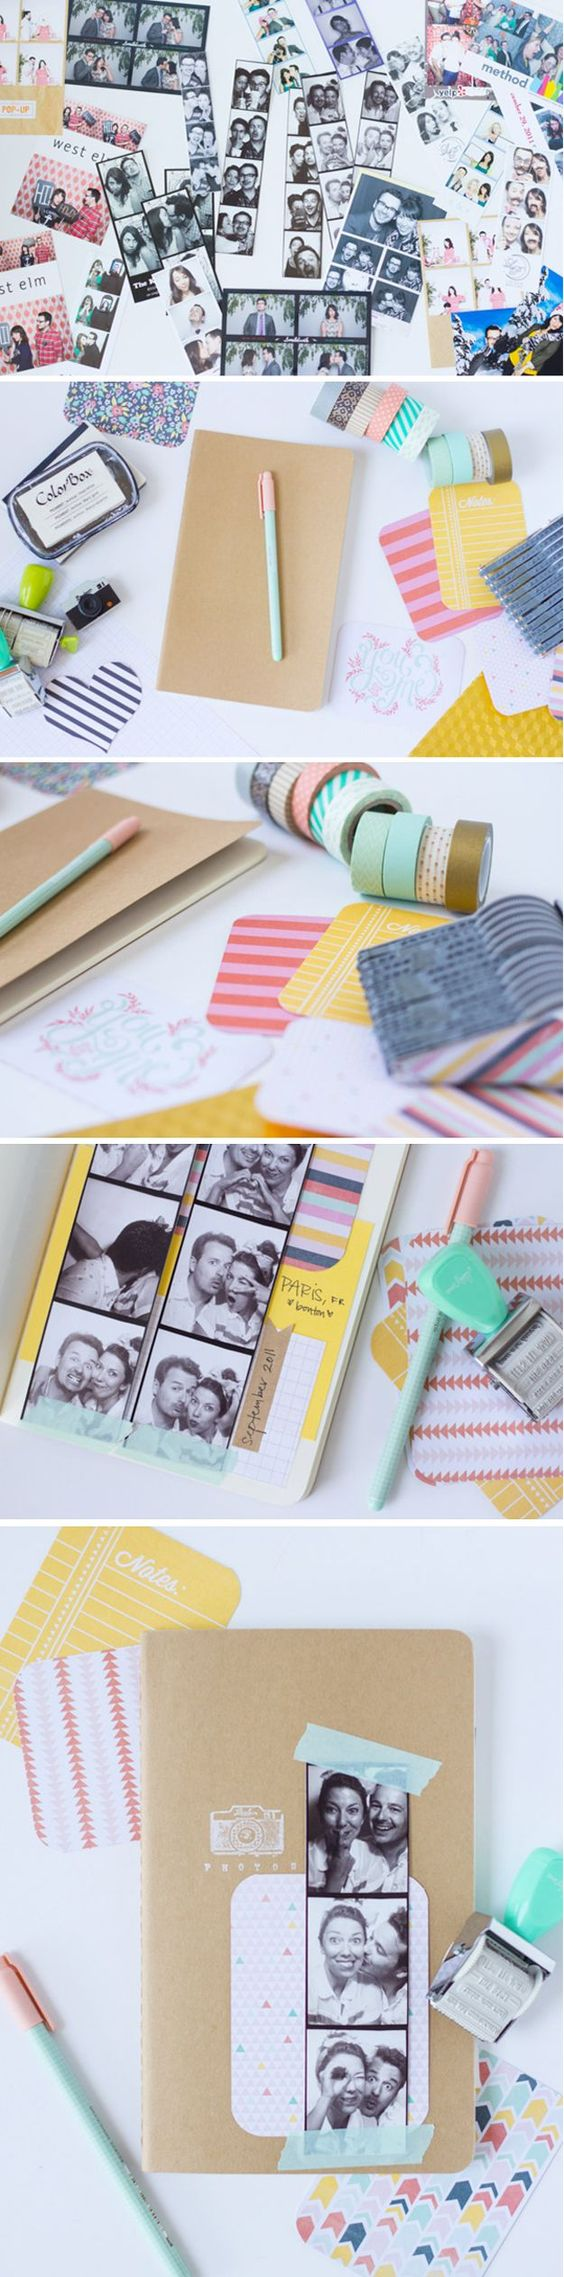 DIY Washi Tape Scrapbooking Projects | DIY Photobooth Strip Scrapbook by DIY Ready at http://diyready.com/100-creative-ways-to-use-washi-tape/: